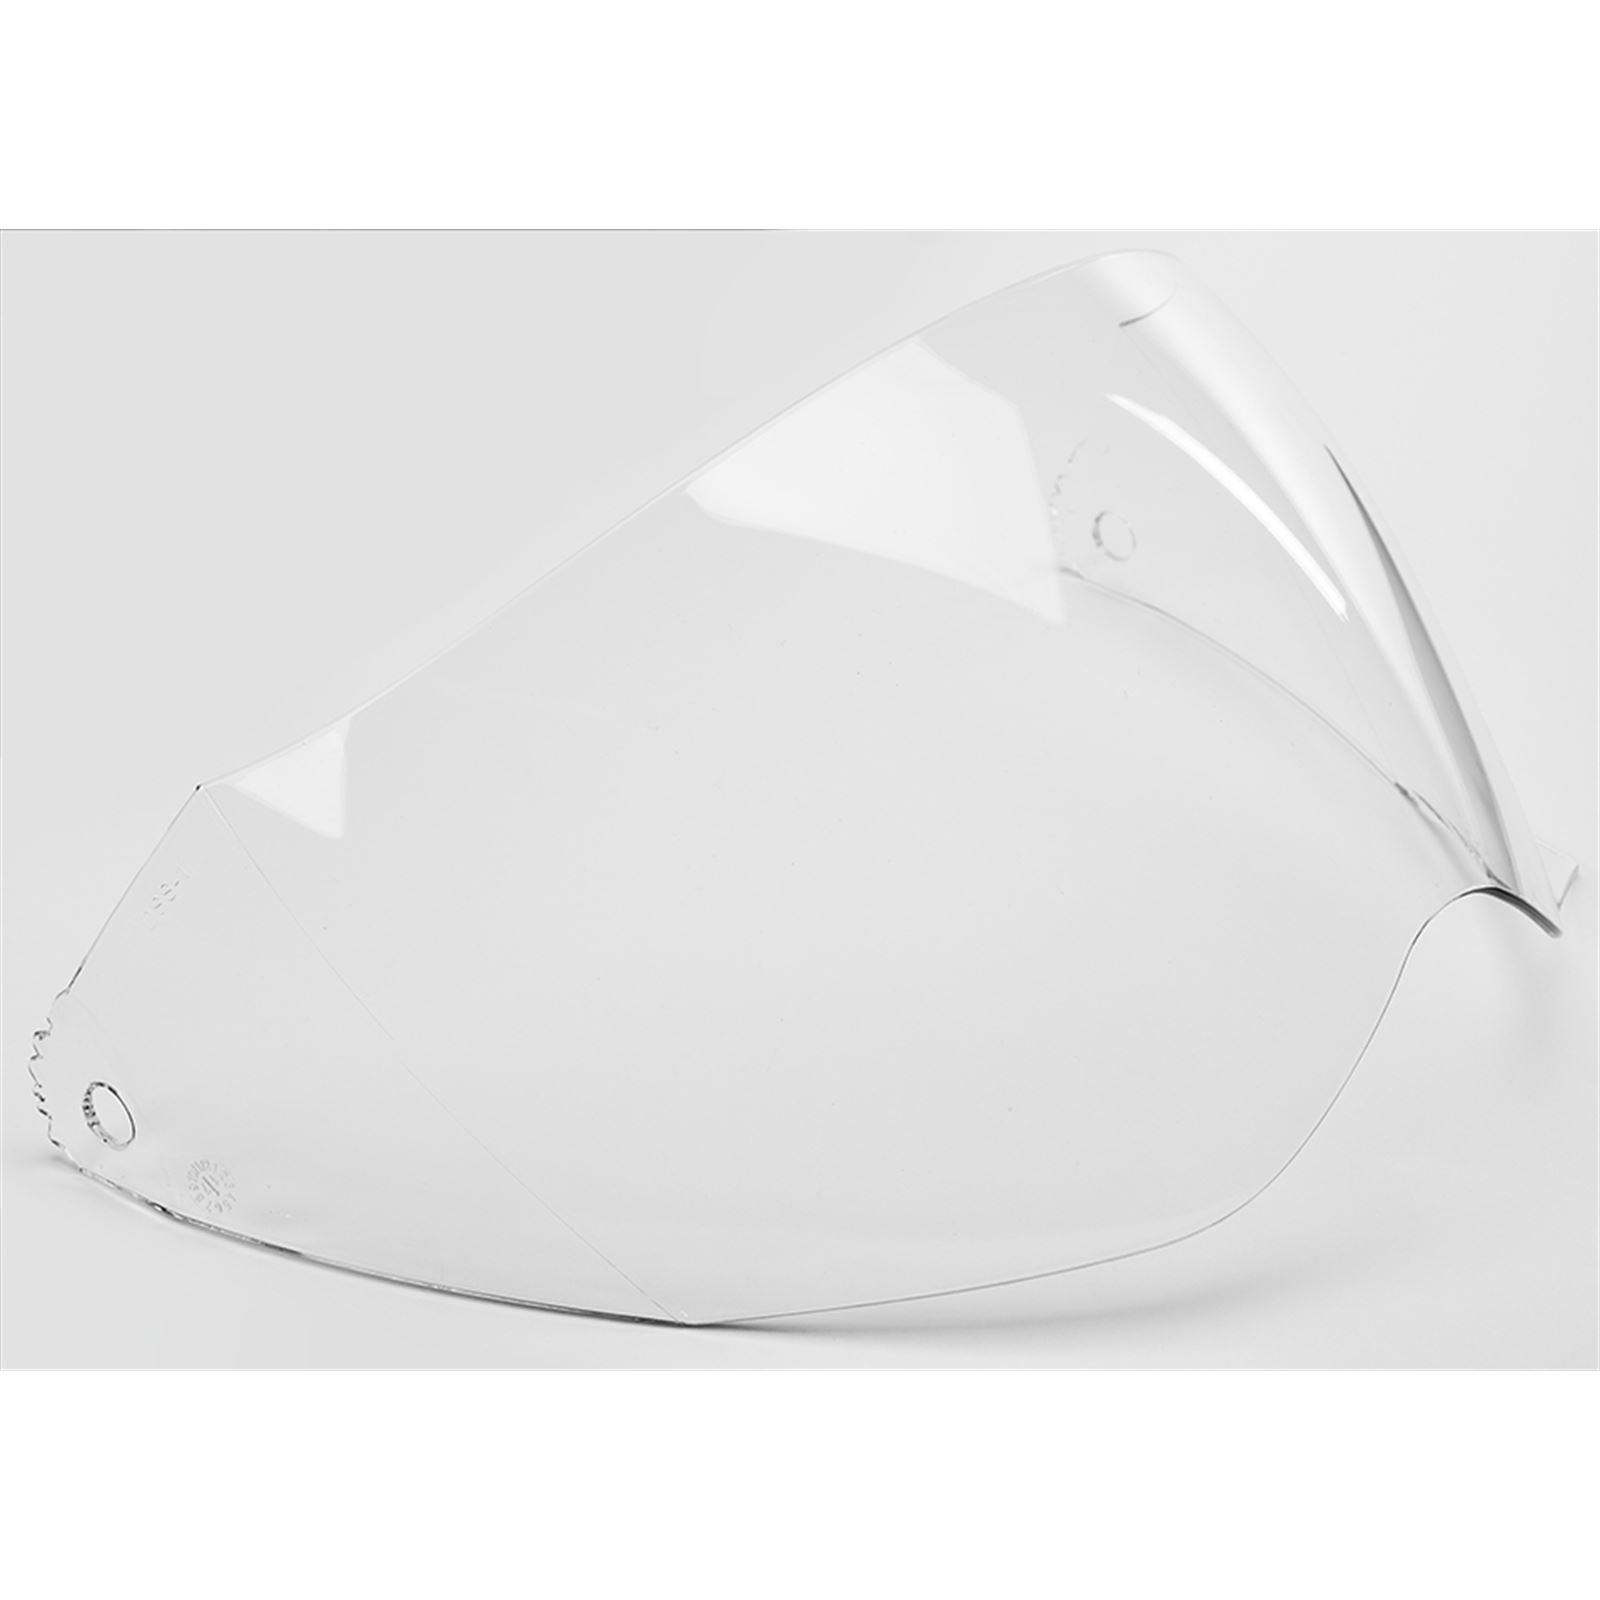 GMax GM11D Helmet Shield